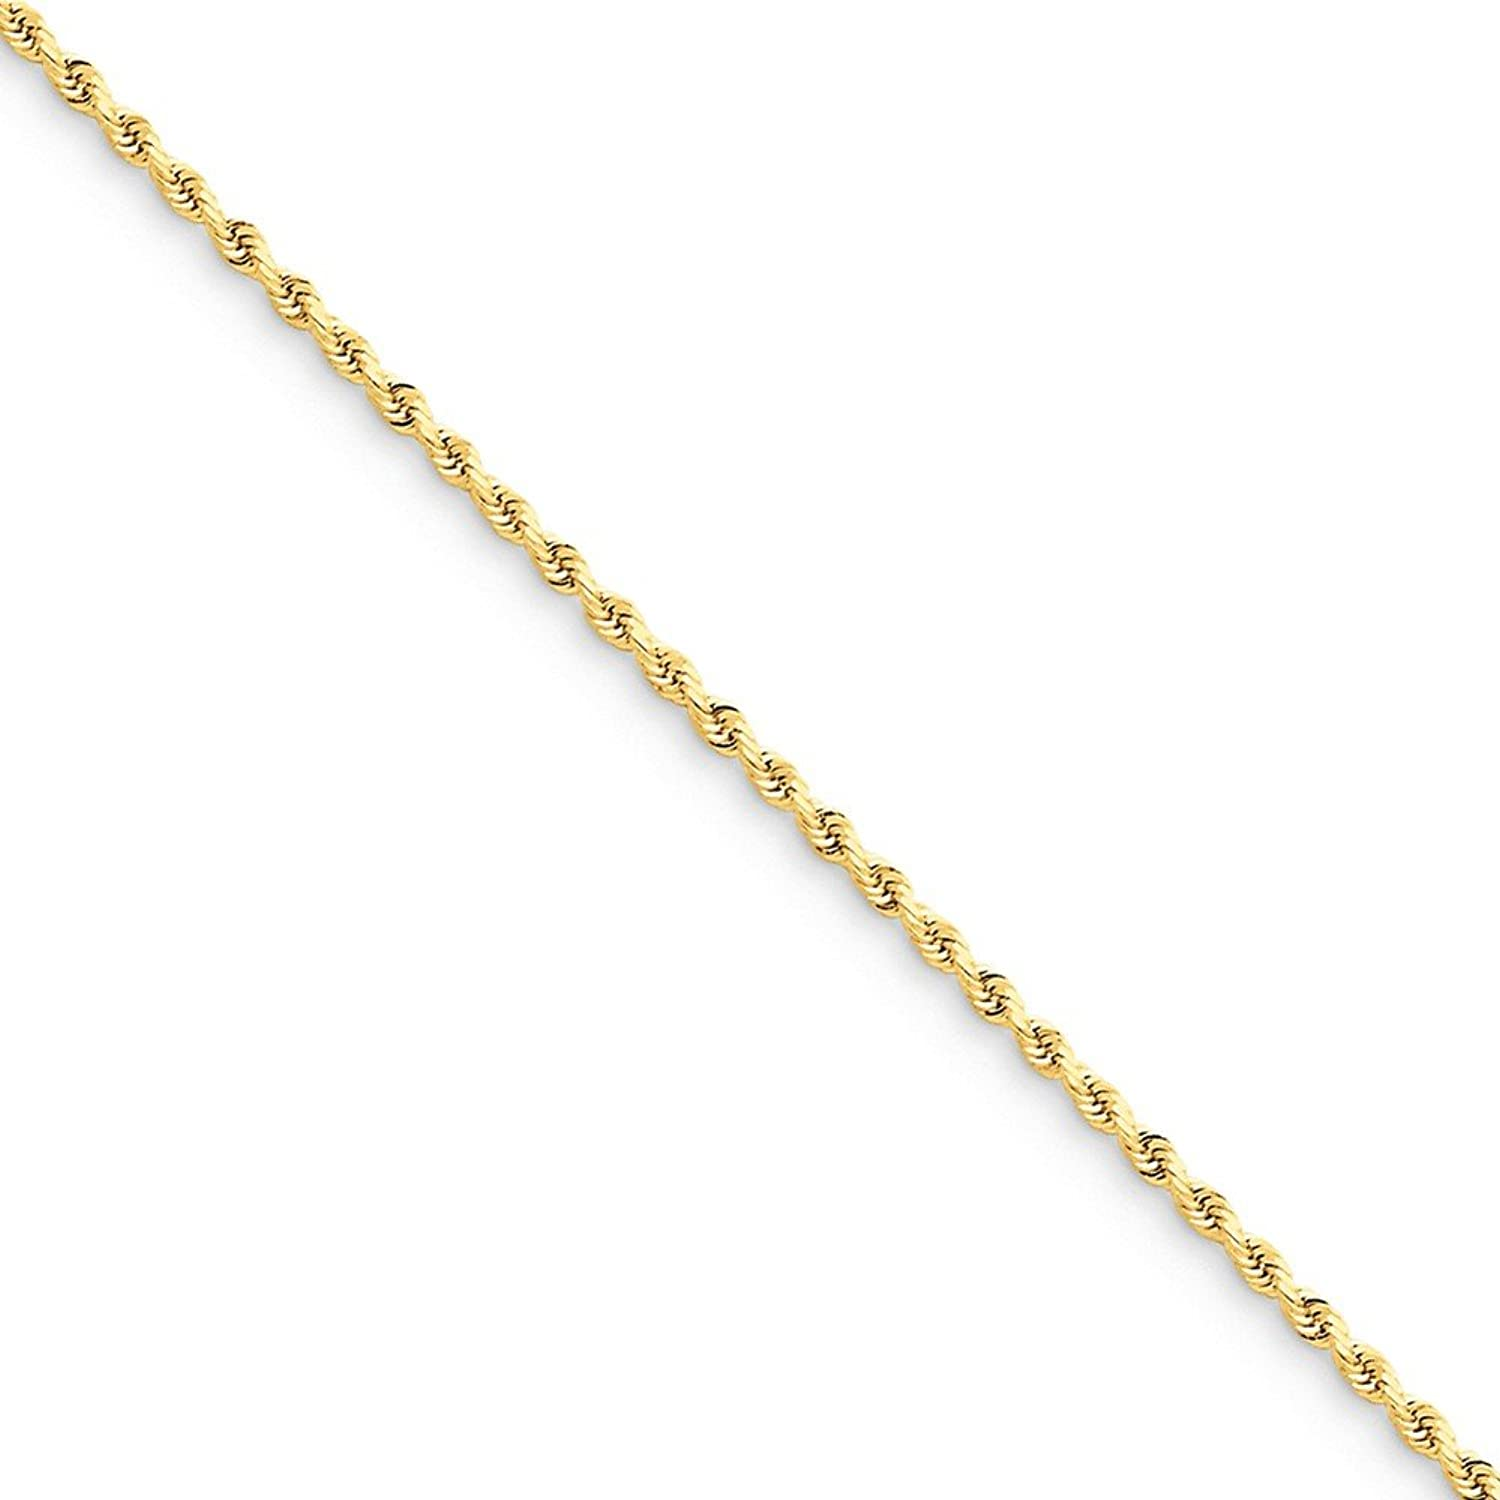 14k 1.75mm Diamond Cut Rope Chain Anklet